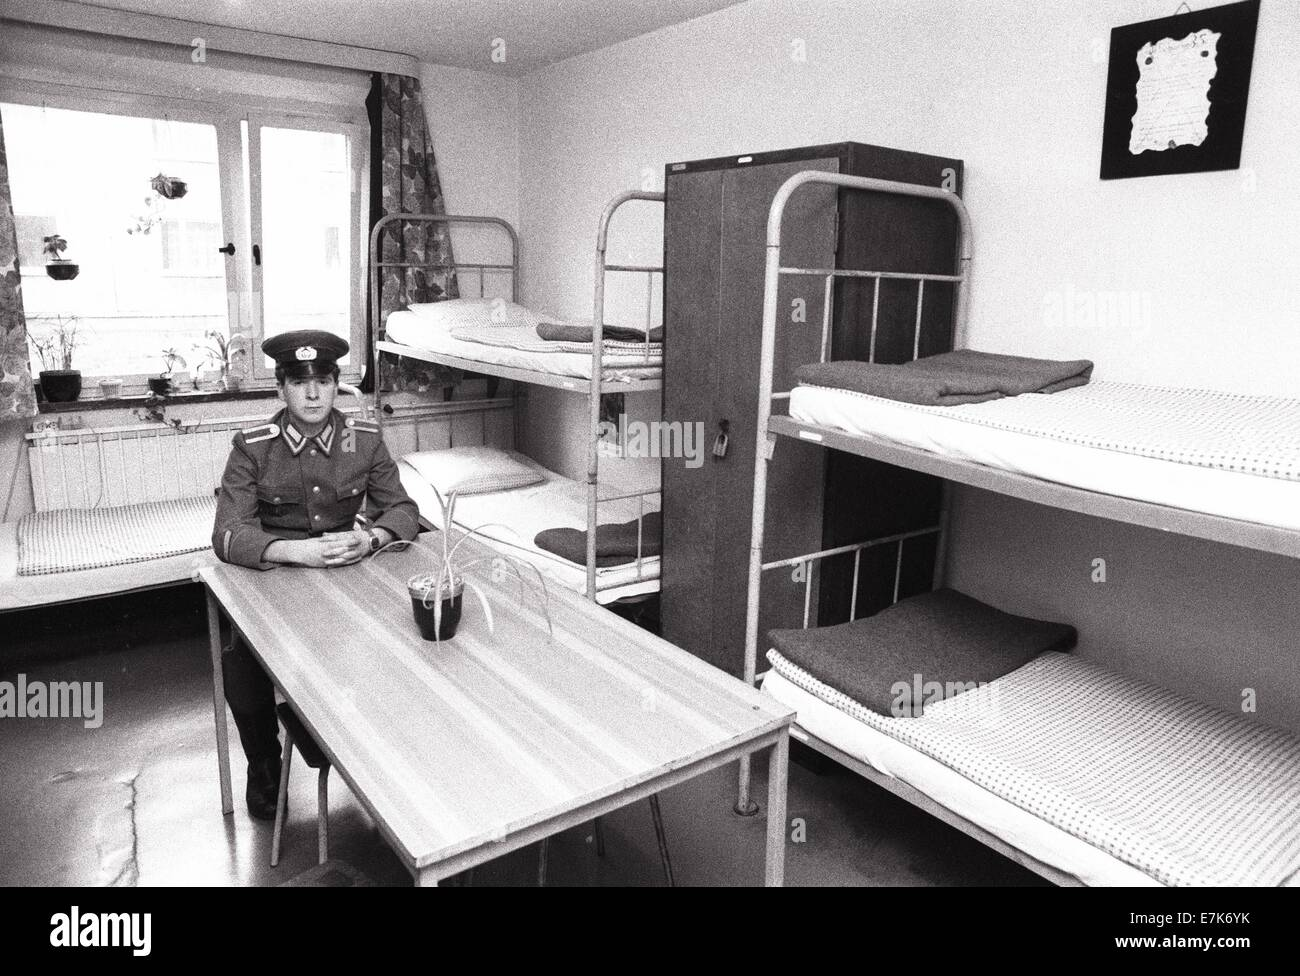 Bad Salzungen, East Germany. 9th Feb, 1990. Soldiers from